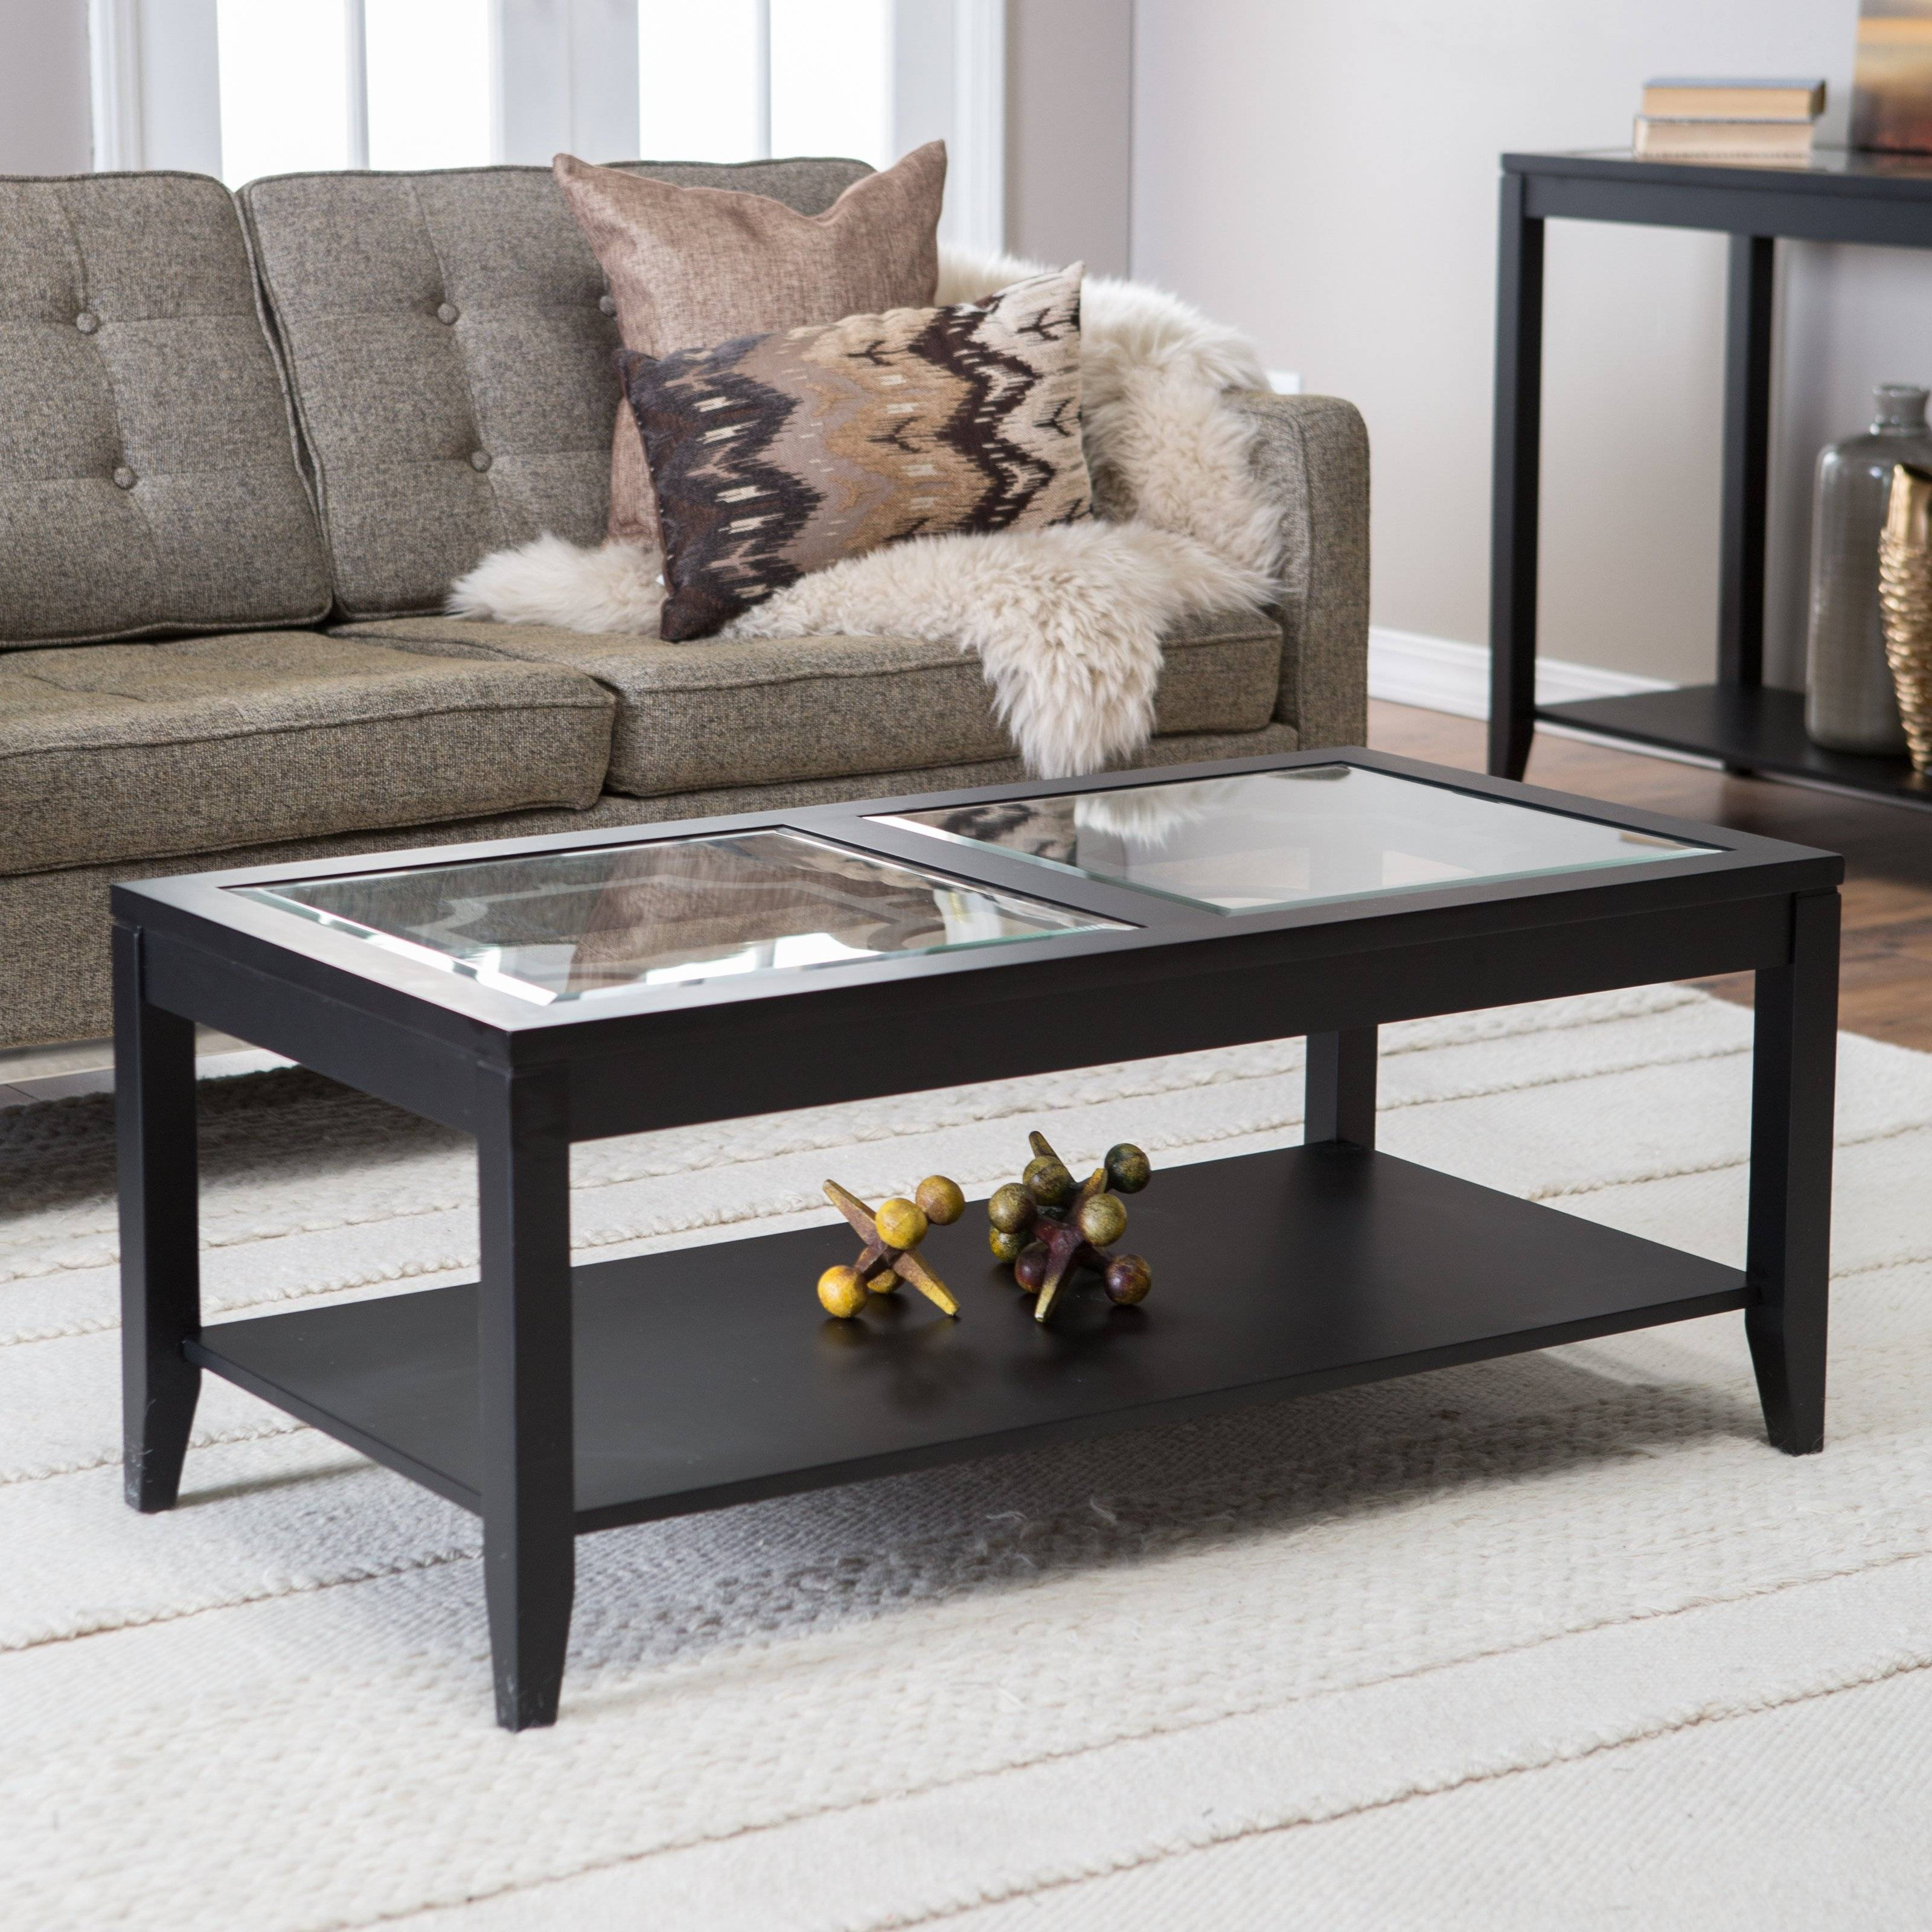 Espresso Square Glass Coffee Table With Ottomans | Coffee Tables for Glass Coffee Tables With Storage (Image 20 of 30)